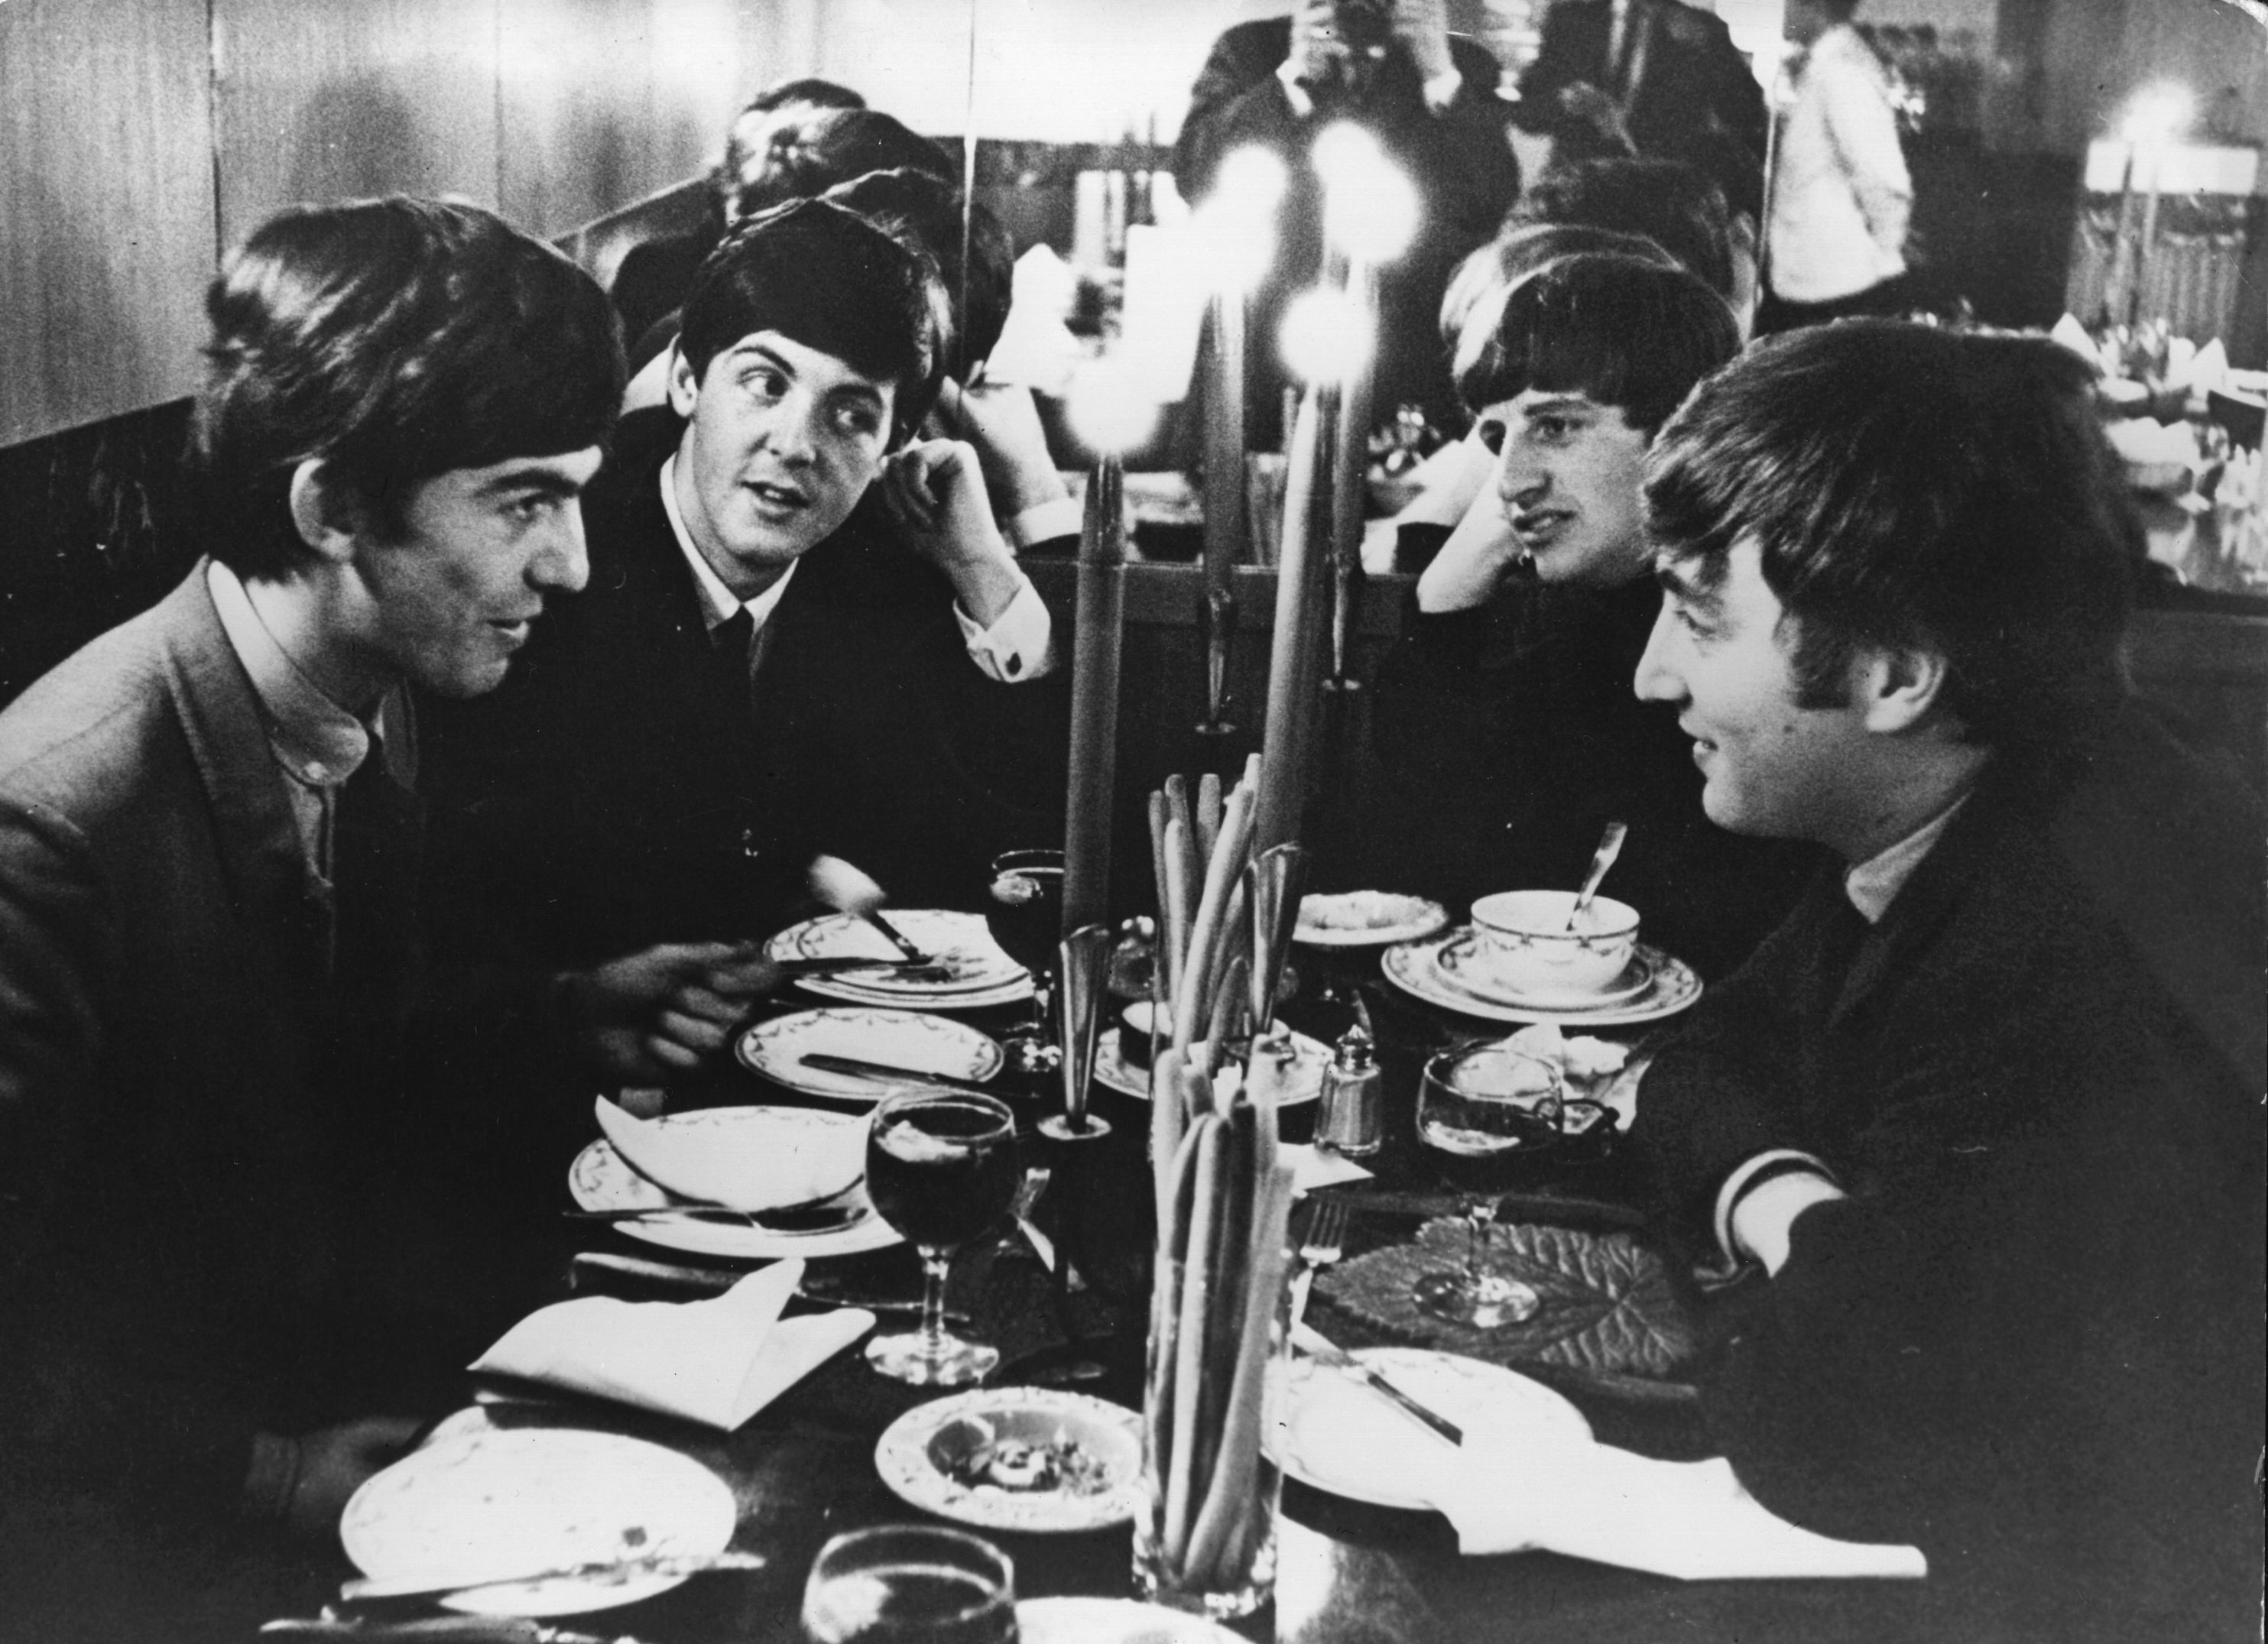 5th October 1963: The Beatles meet for the first time after their holidays by candlelight at the Star Steak House in Shaftsbury Avenue, London. This evening they appear on 'Ready, Steady, Go', the British music television programme. (Photo by Keystone/Getty Images)